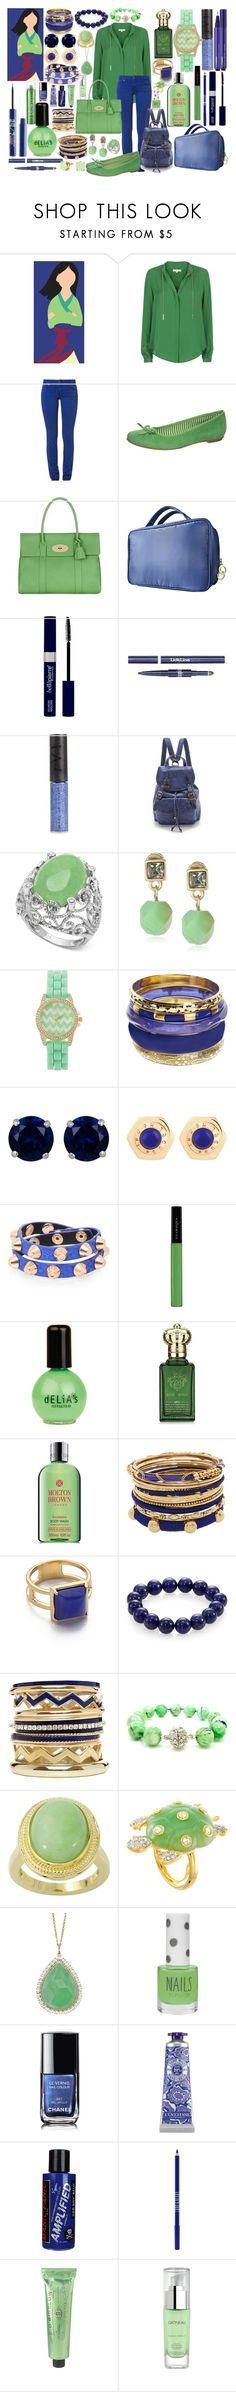 """""""Mulan- Disney High"""" by thequeenofreading ❤ liked on Polyvore featuring MICHAEL Michael Kors, CIMARRON, Pier 1 Imports, Mulberry, By Terry, Pixi, MAKE UP STORE, Urban Decay, Frye and Kenneth Cole"""